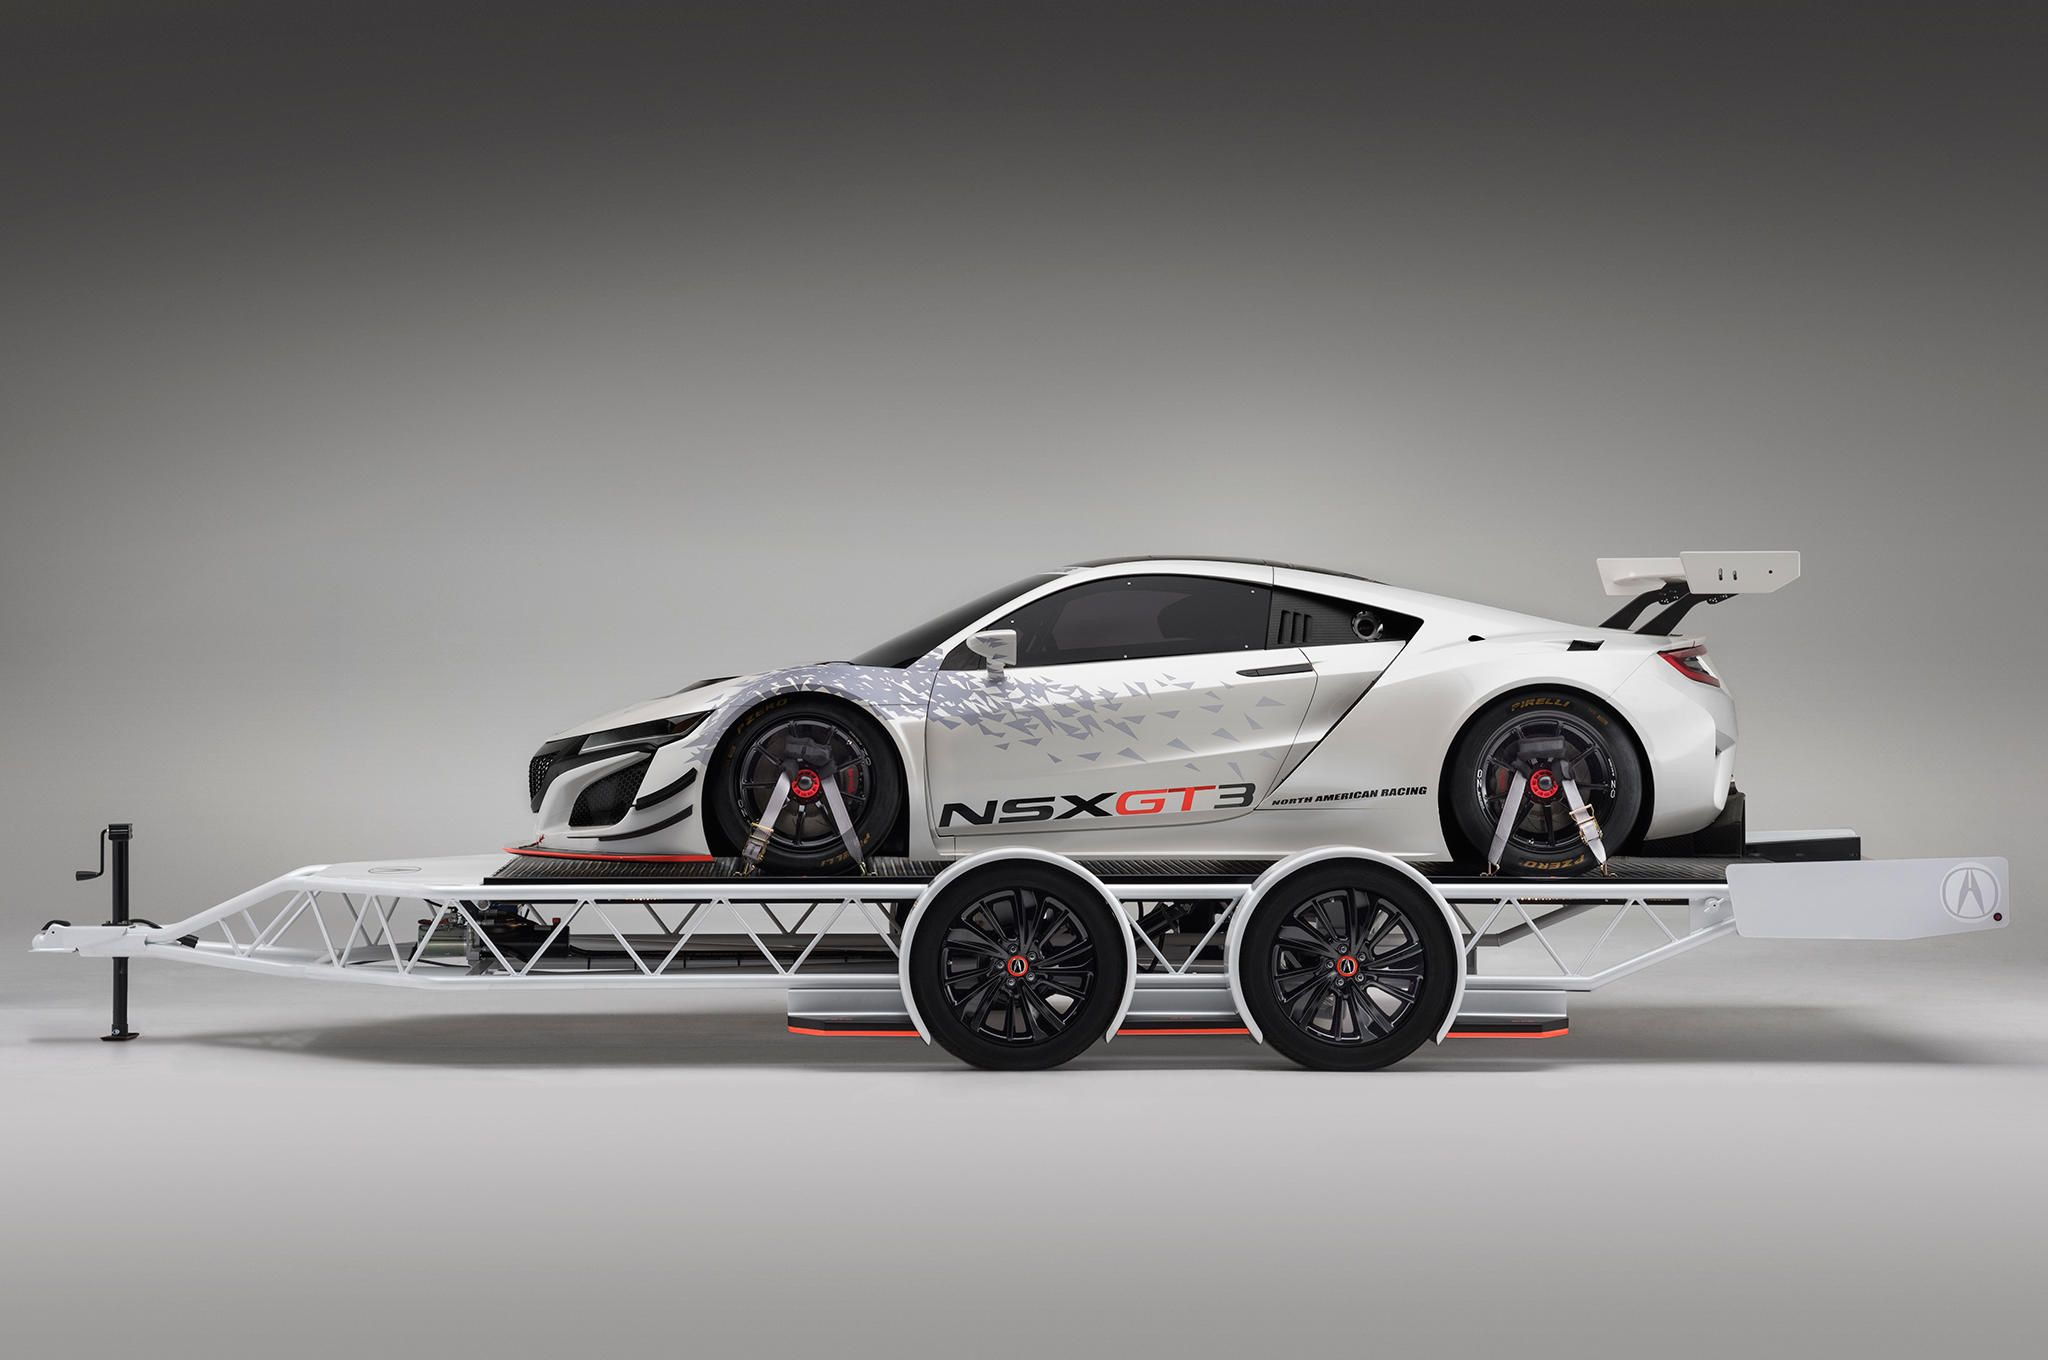 Modified Acura Mdx To Tow Nsx Gt3 Racer To Sema Nsx Acura Acura Mdx